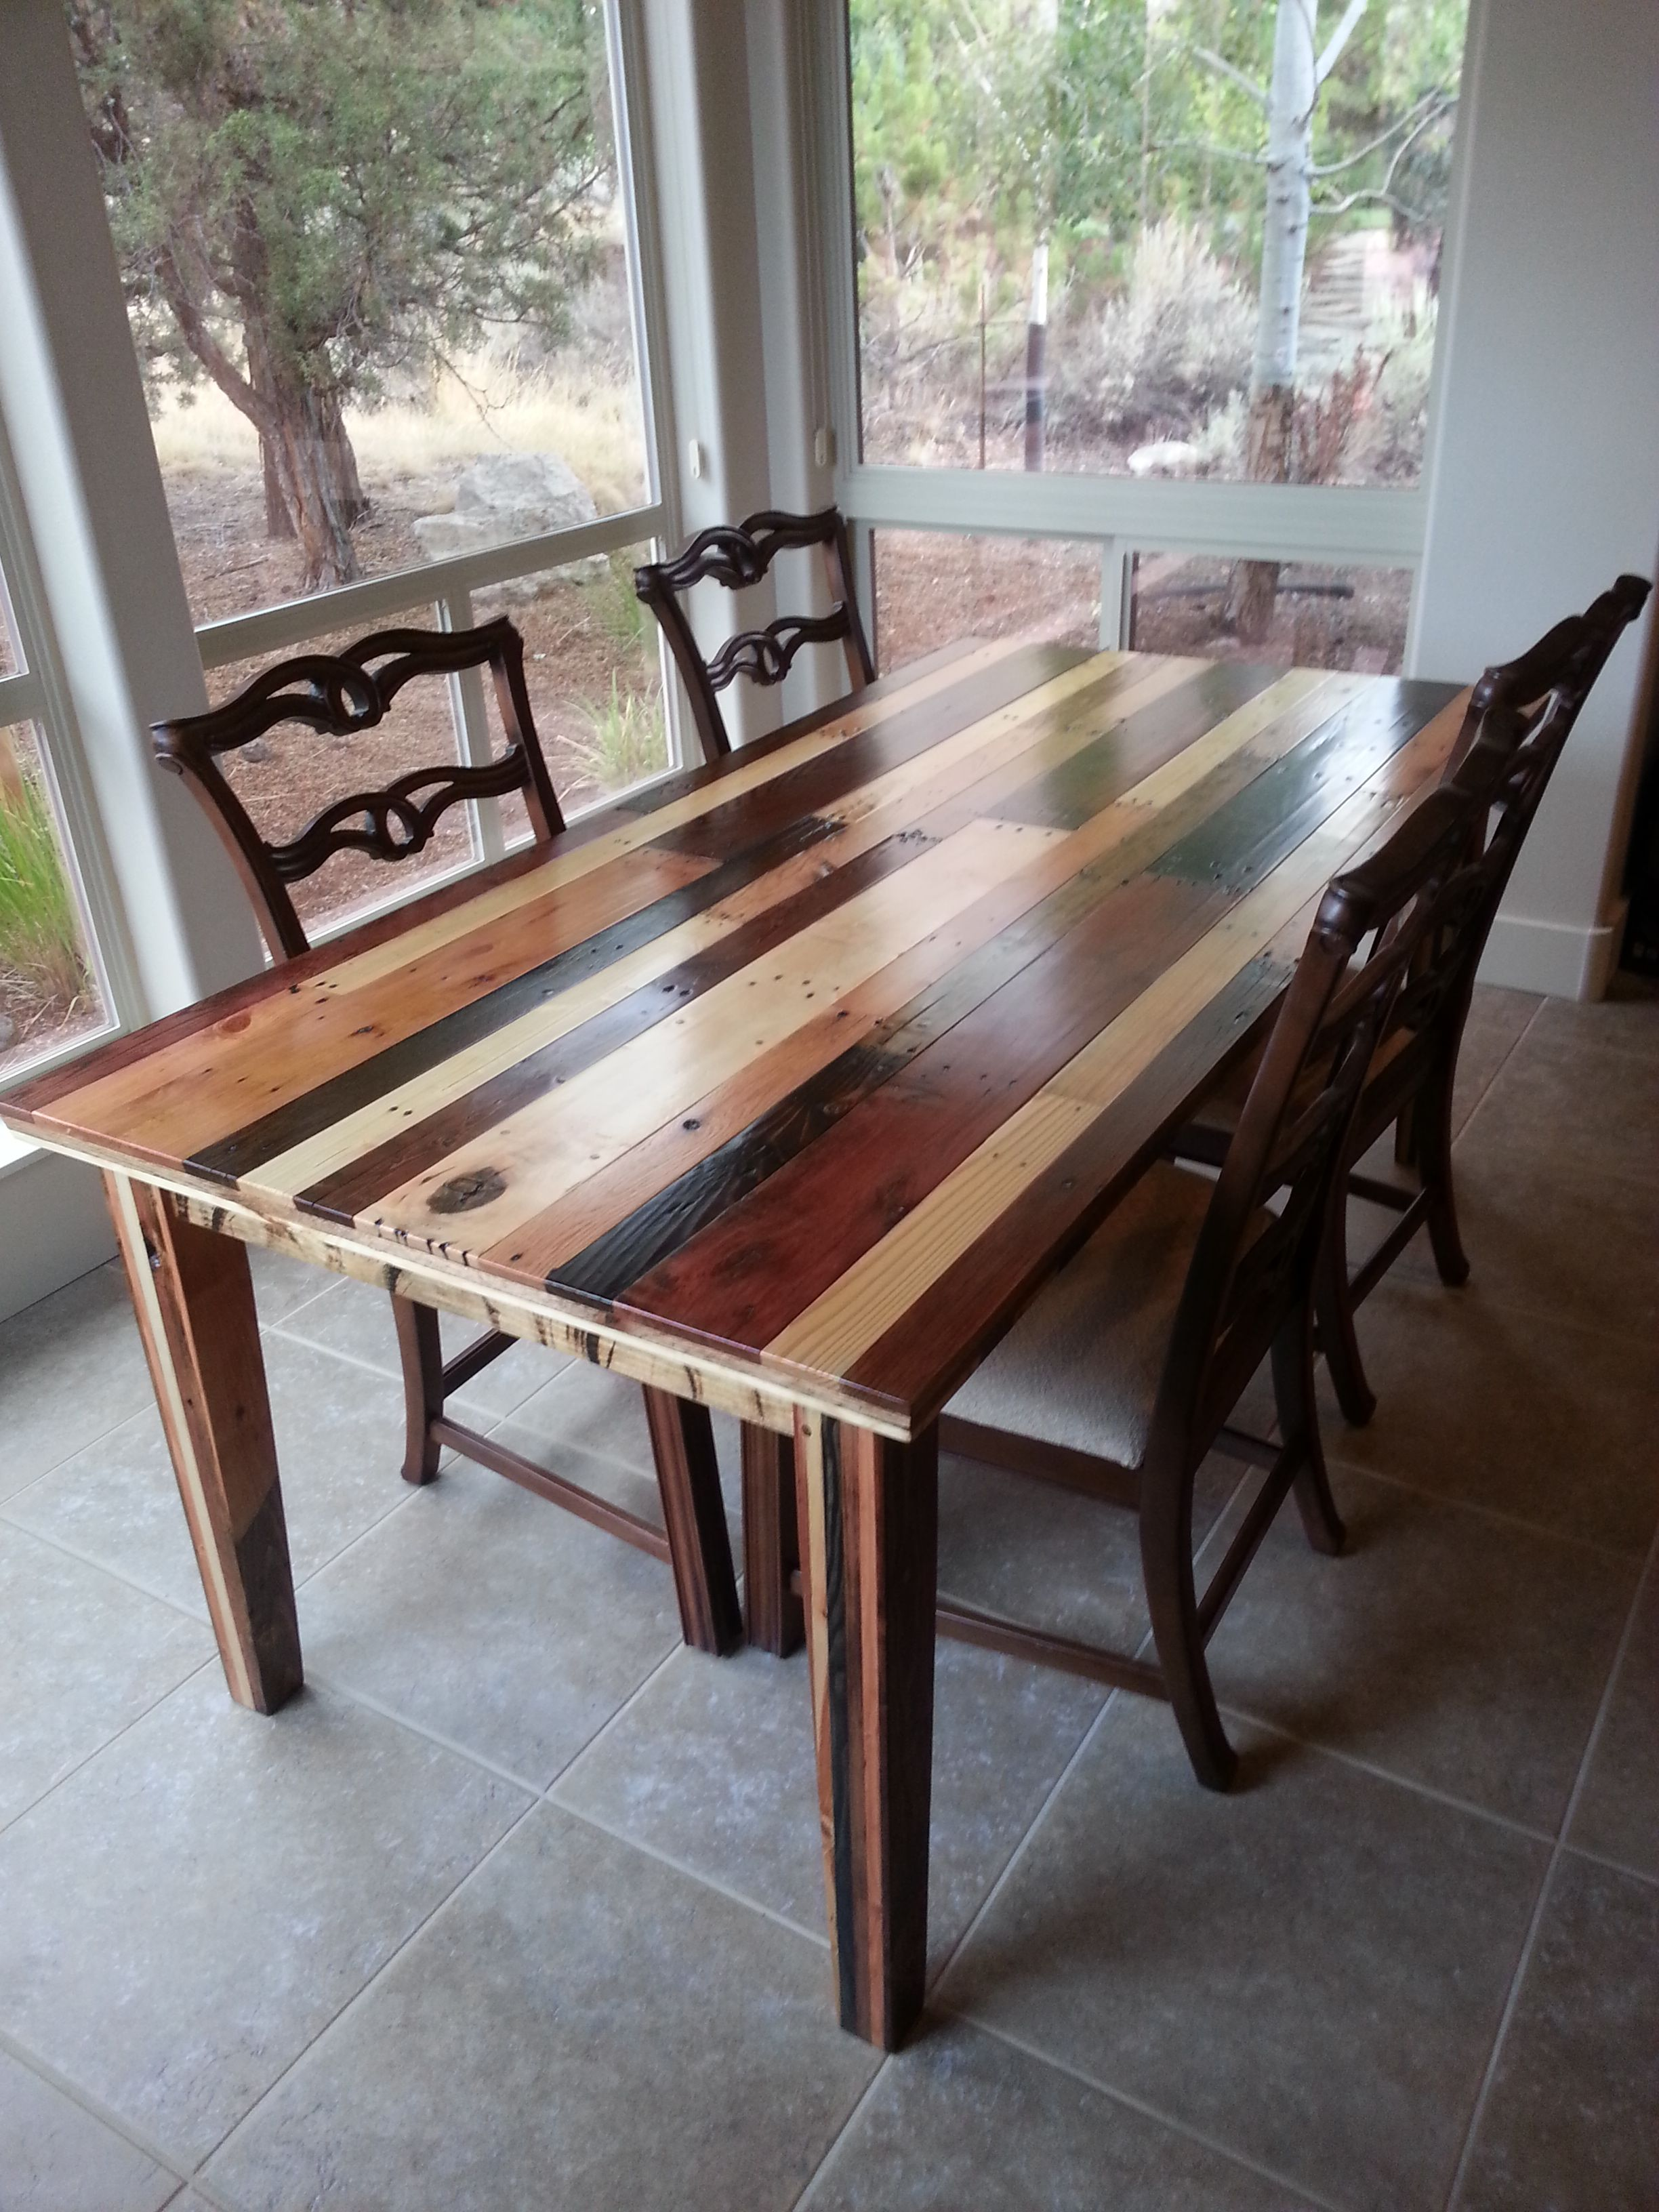 Dining room table i made from pallet wood pallet wood for How to make a pallet kitchen table